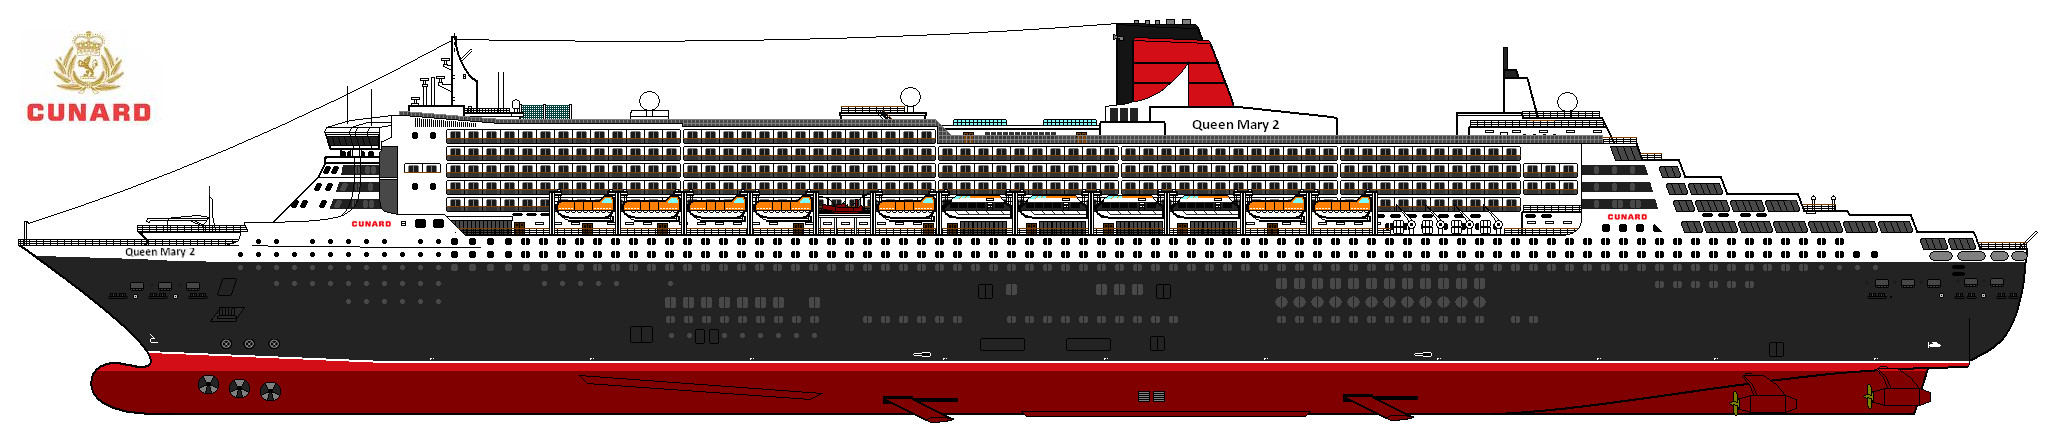 Queen Mary 2 By Lupin3ita On Deviantart